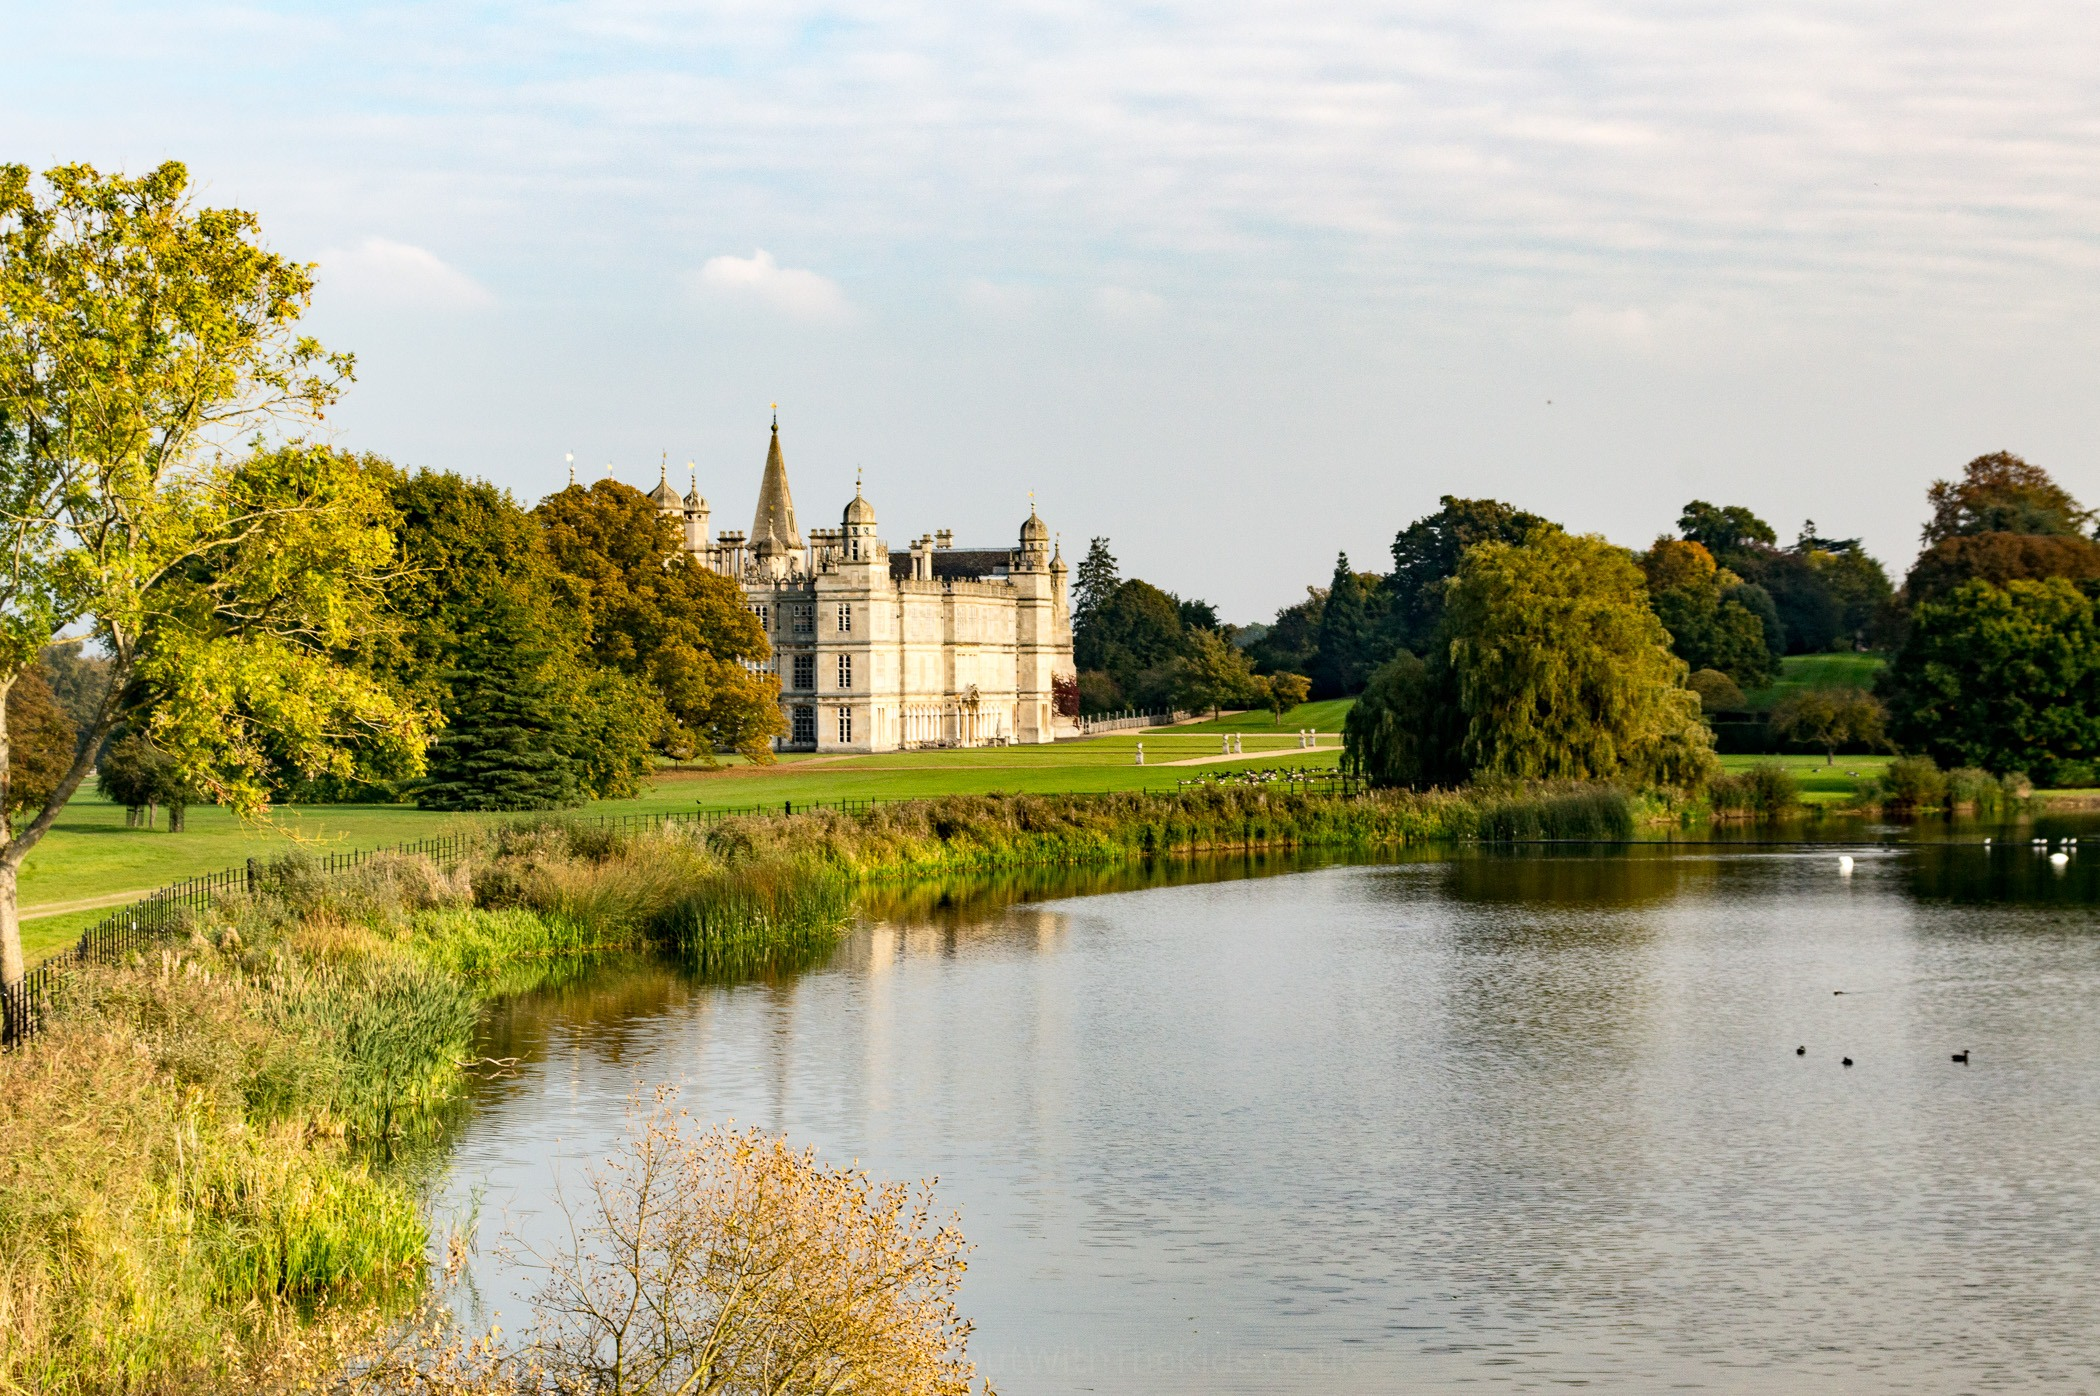 Burghley House next to the lake